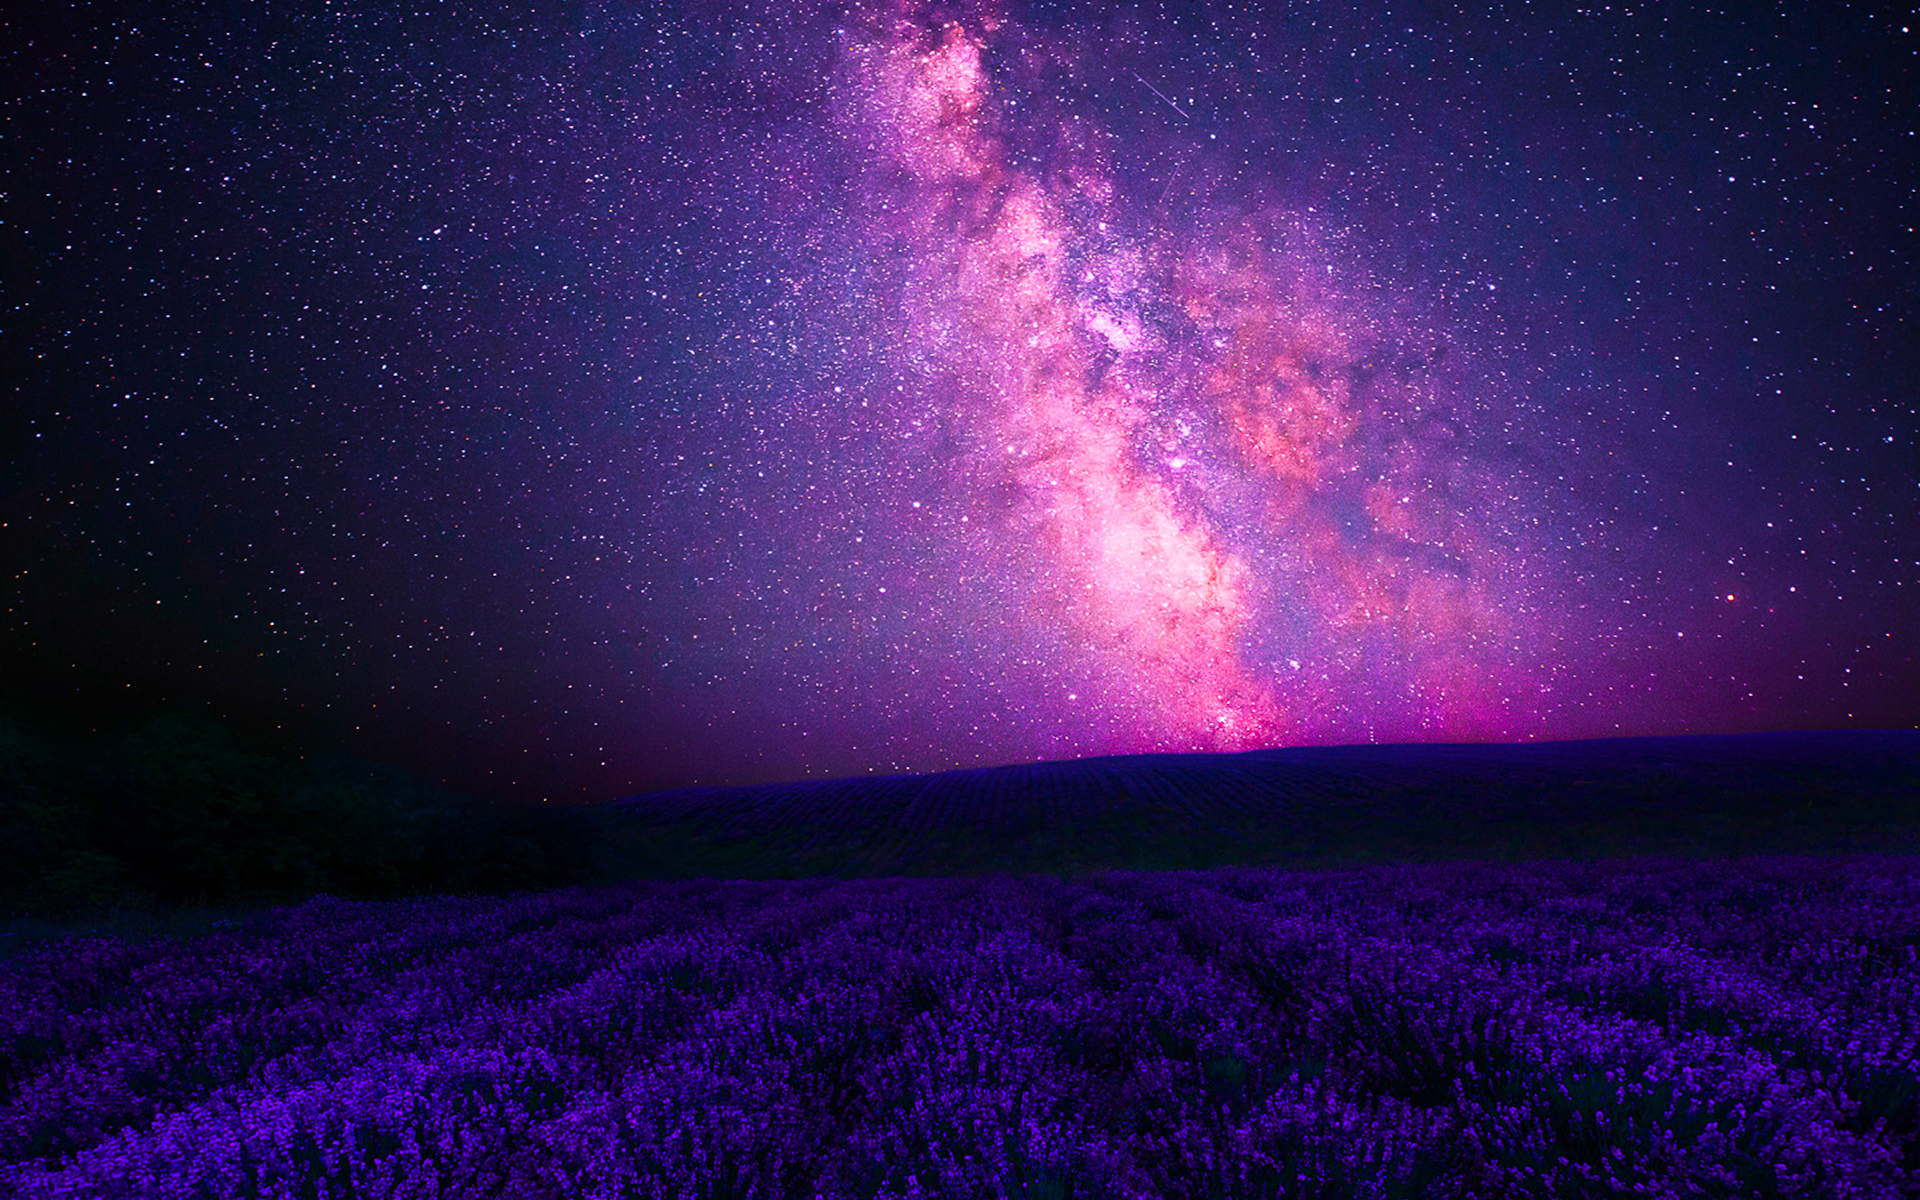 Pink Galaxy Over Lavender Field Full HD Wallpaper And Background